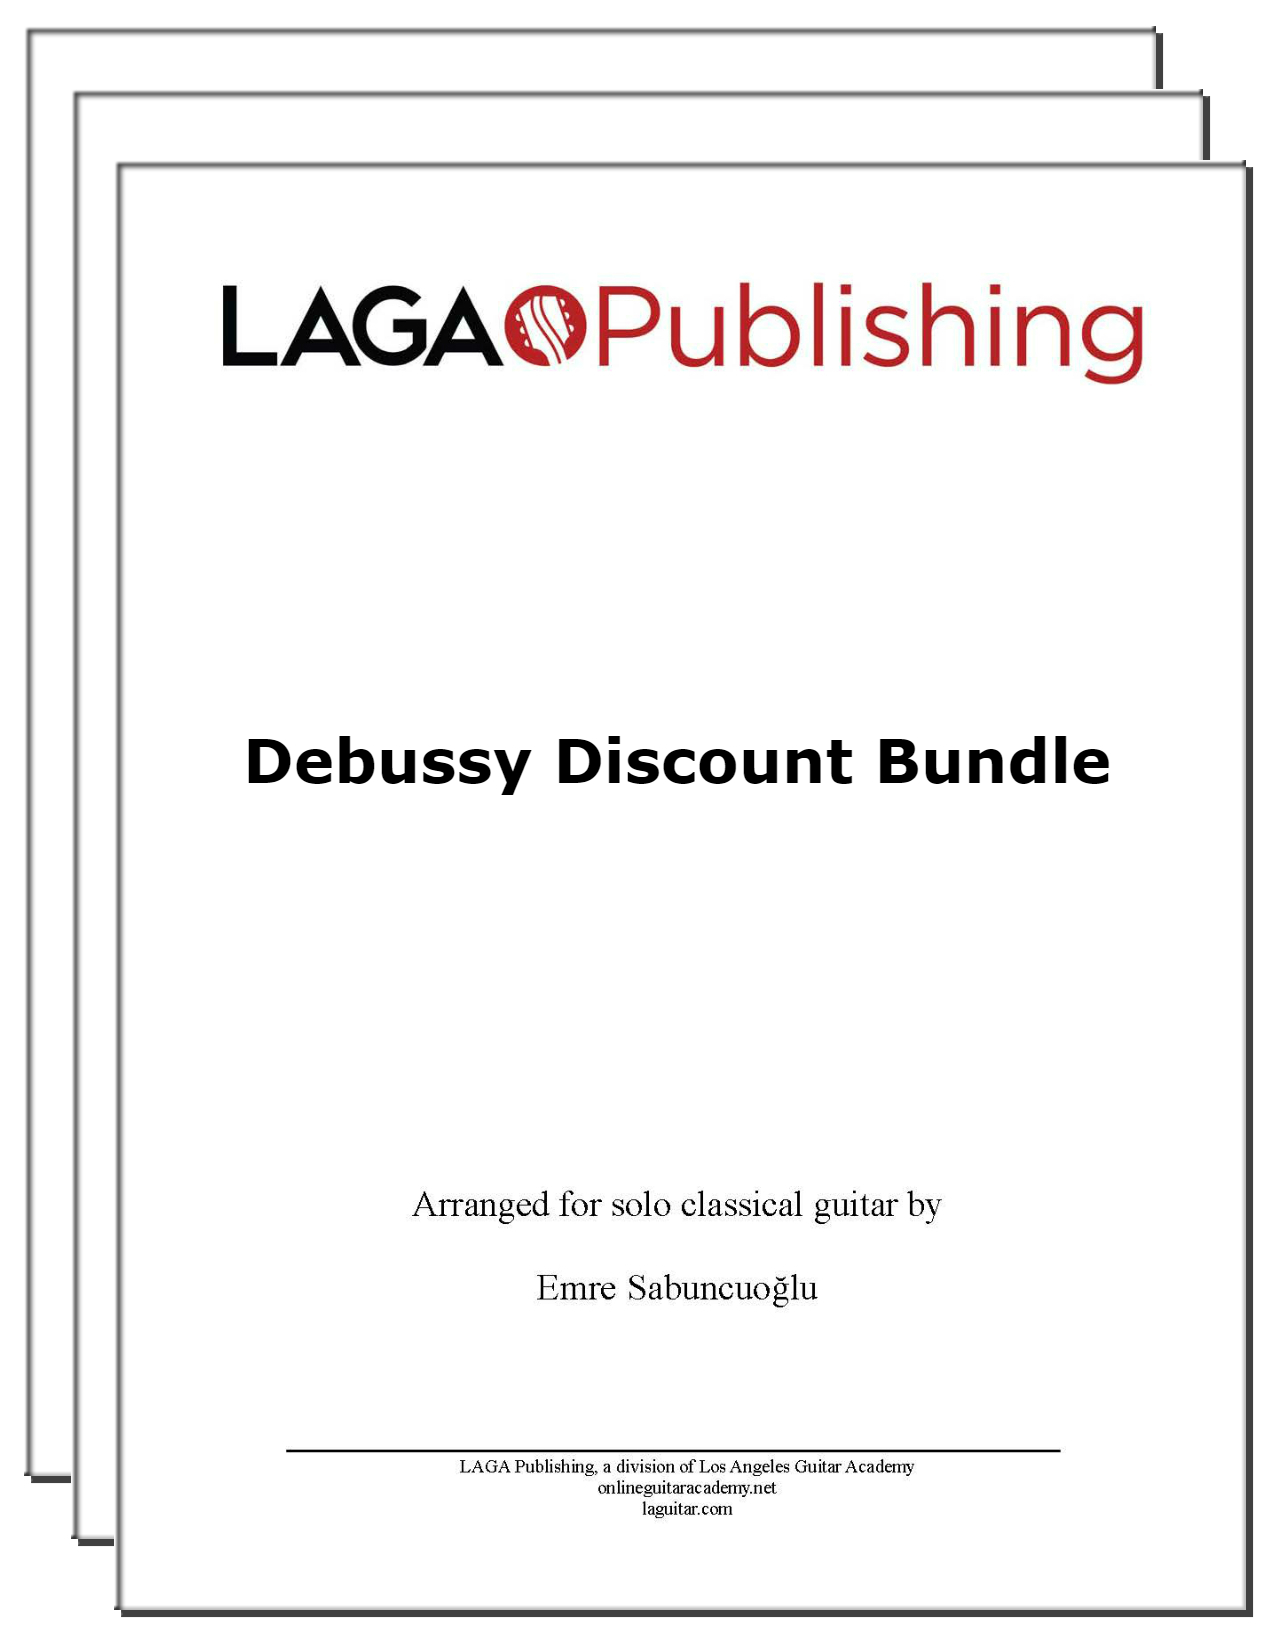 LAGA-Publishing-debussydiscount-bundle